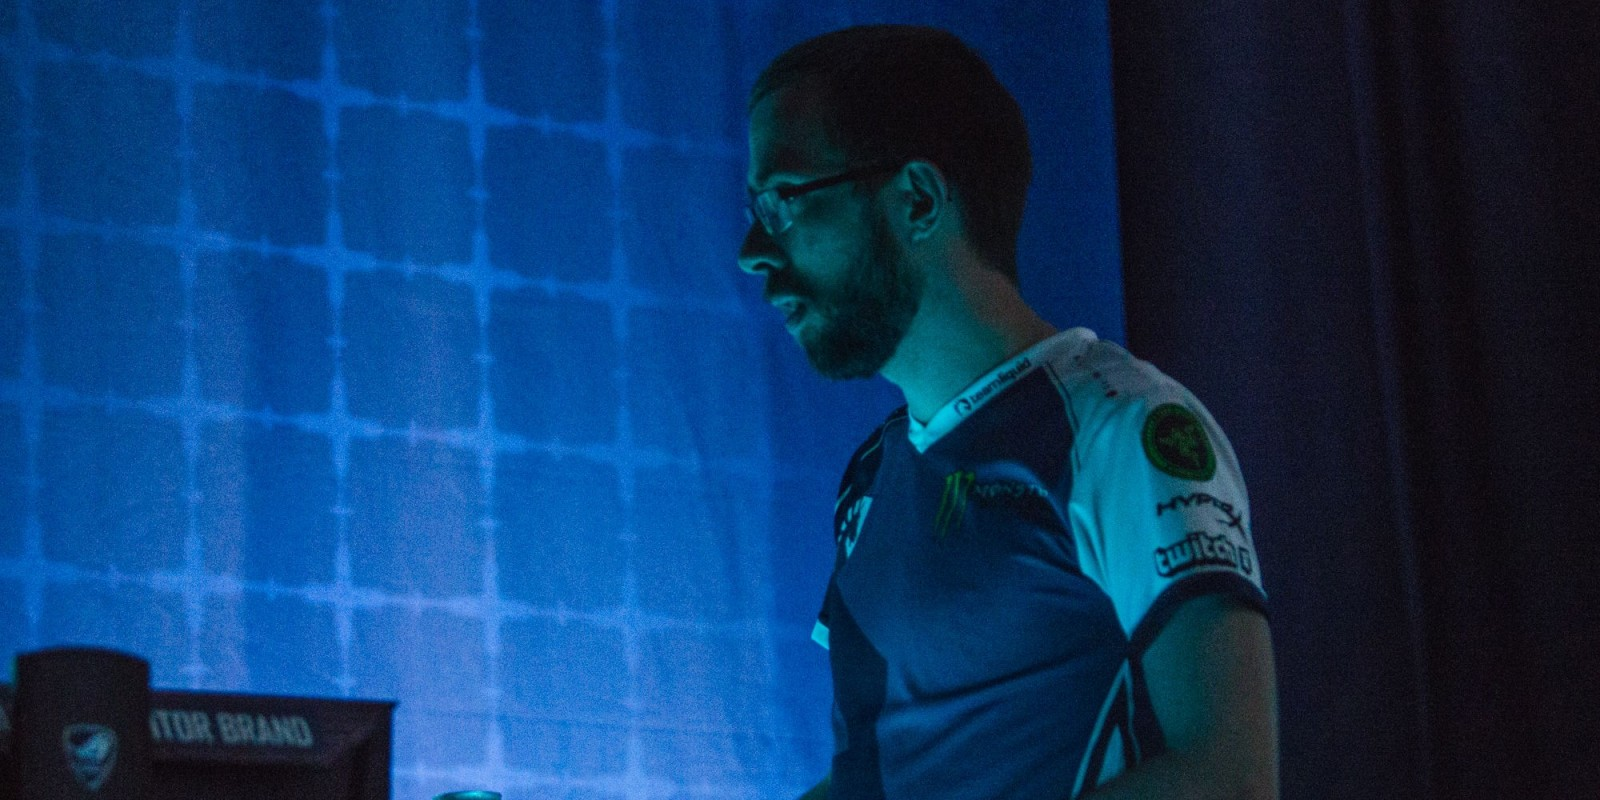 Picture of TLO on stage at Dreamhack Summer in Jönköping, Sweden